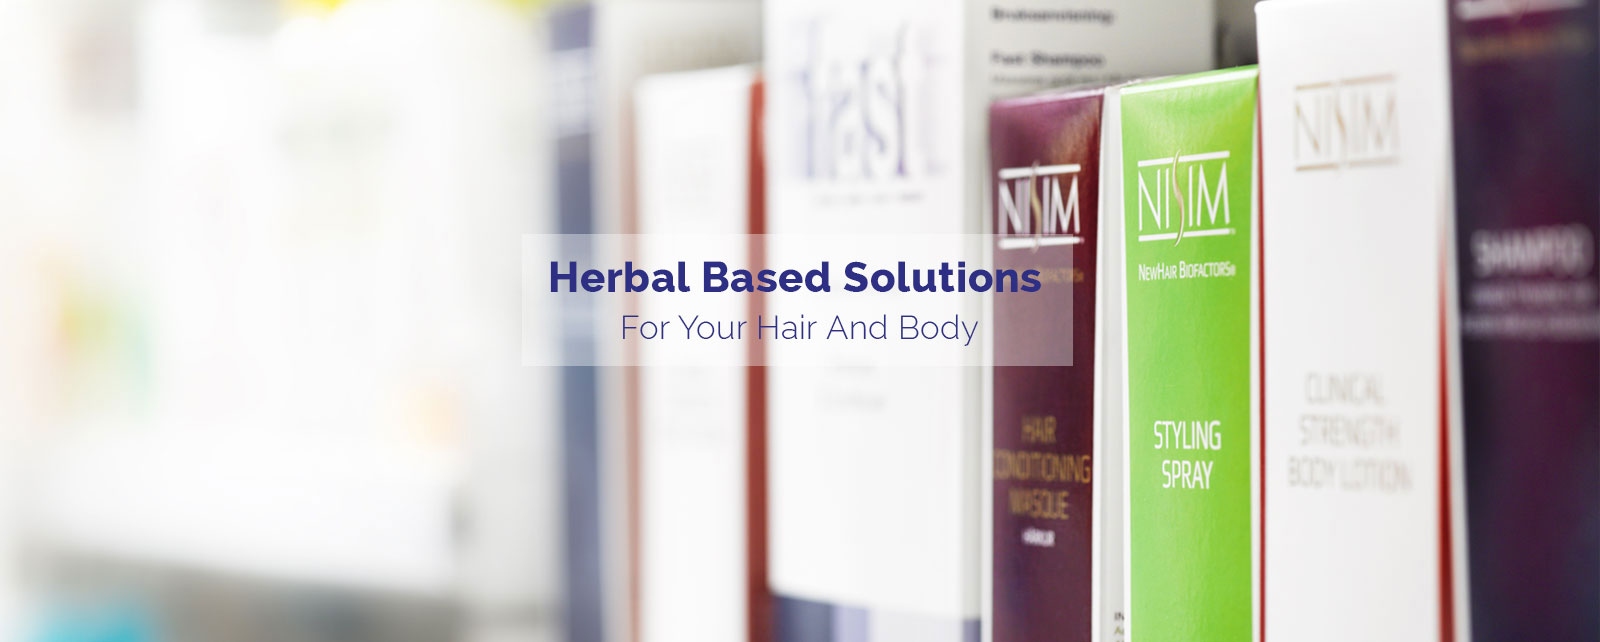 Herbal Based Solutions For Your Hair And Body